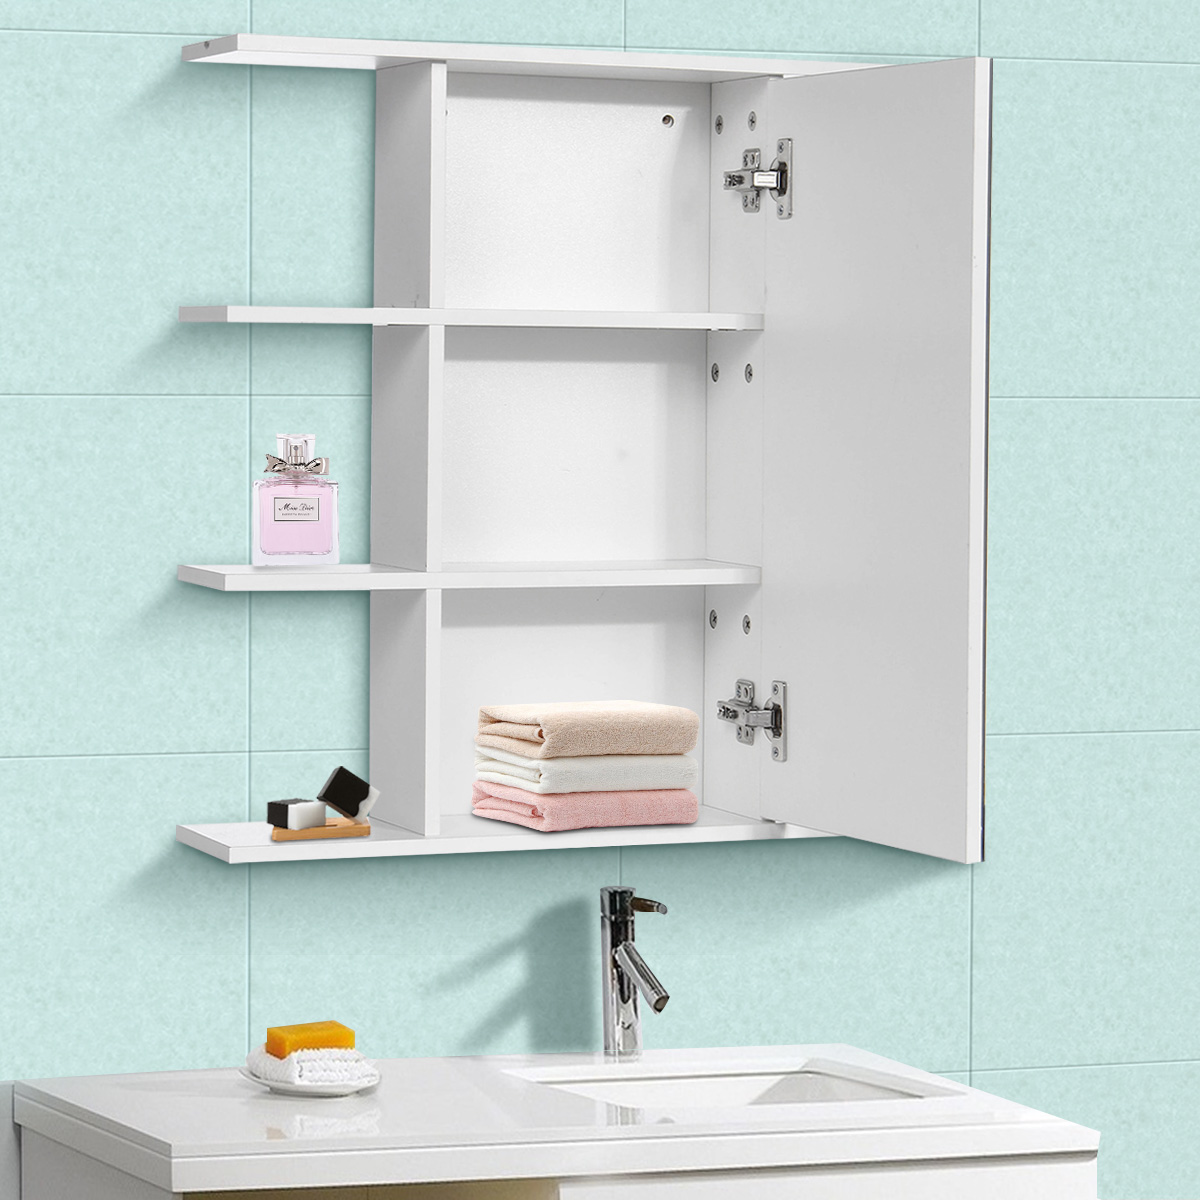 Bathroom Cabinet with Mirror Wall Mounted Bathroom Toilet Furniture Cabinets Cupboard Shelf Cosmetic Storager 60x60x14.5cm